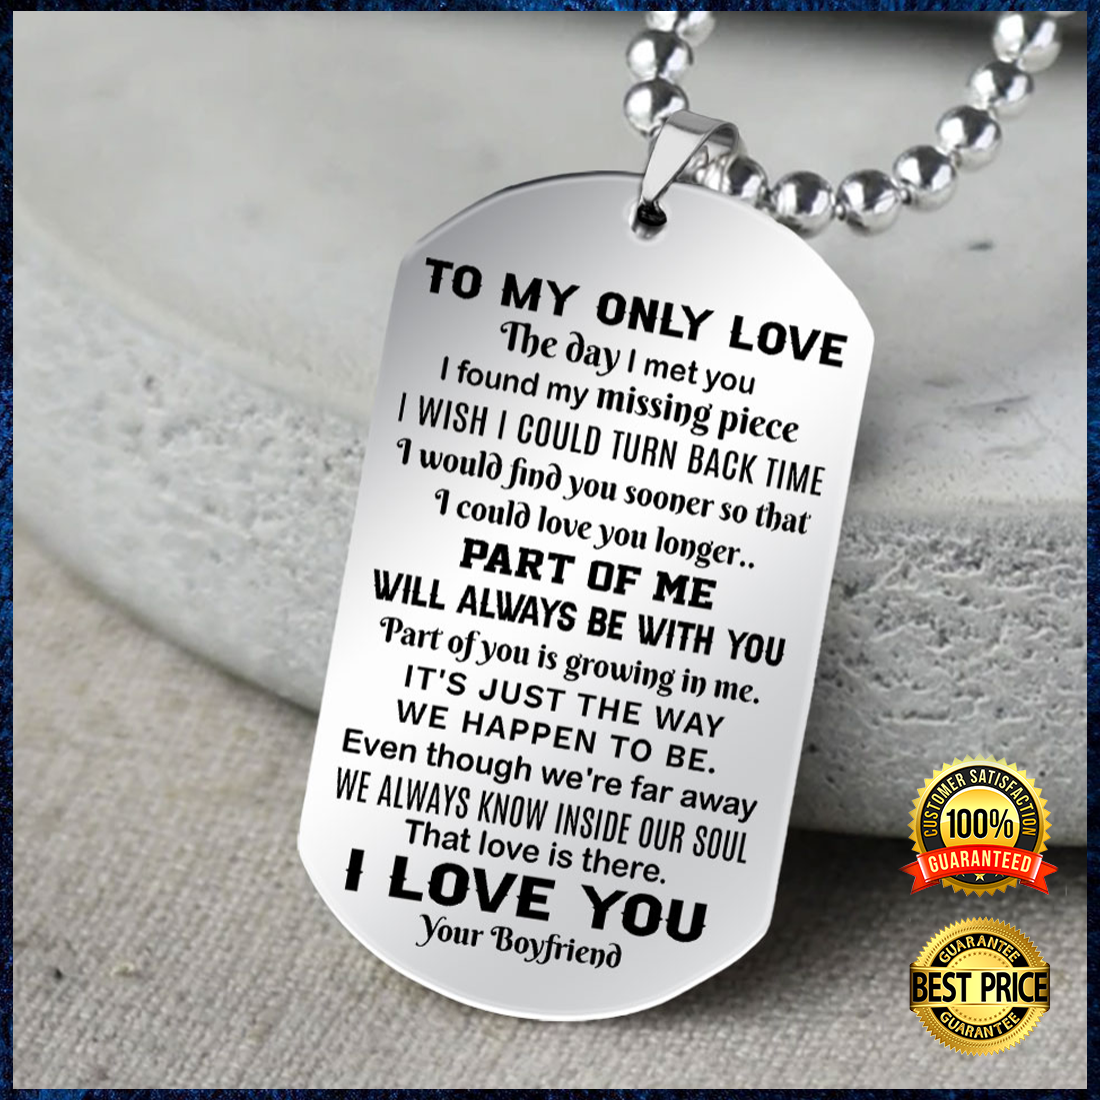 TO MY ONLY LOVE THE DAY I MET YOU I FOUND MY MISSING PIECE DOG TAG 7